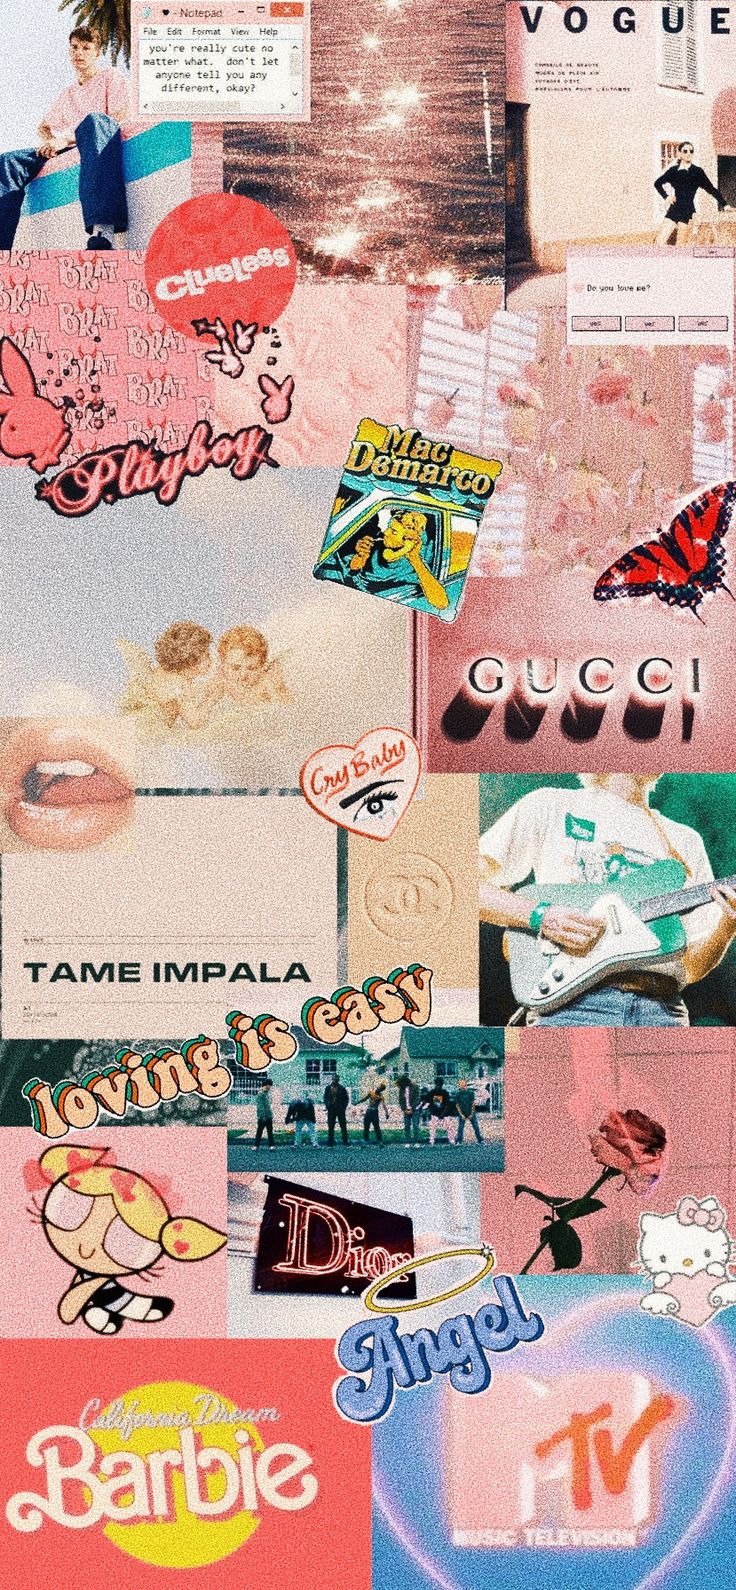 retro vintage aesthetic collage wallpaper iphone x xr xs